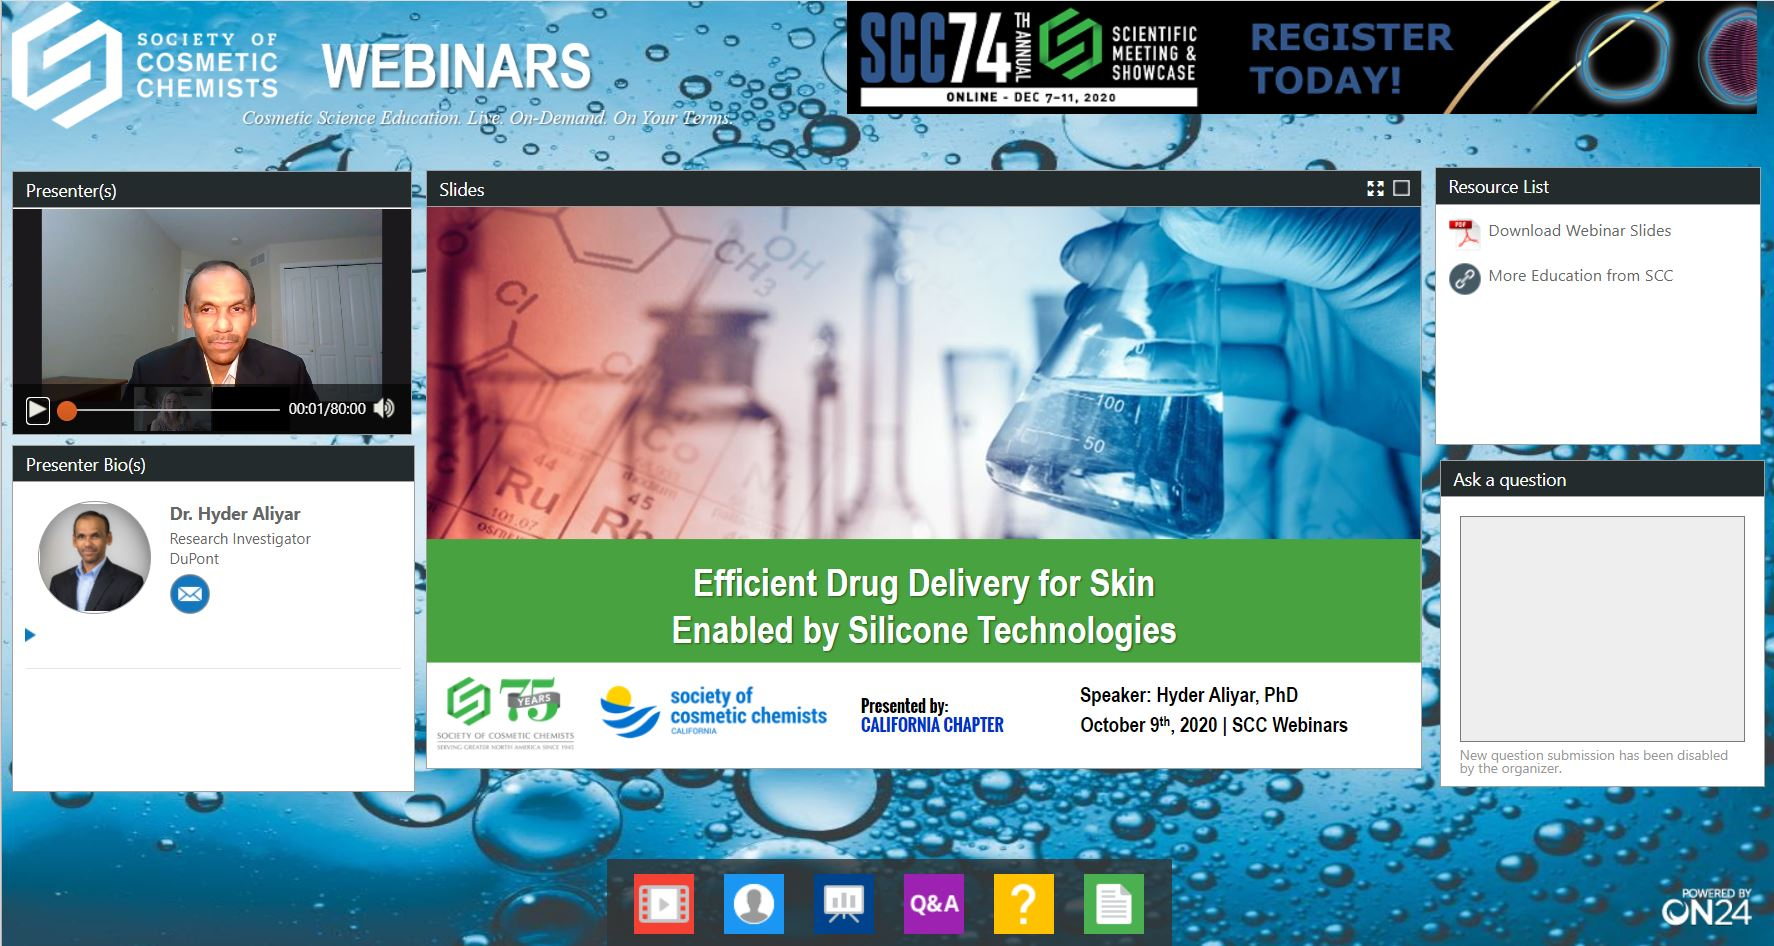 Efficient Drug Delivery for Skin Enabled by Silicone Technologies